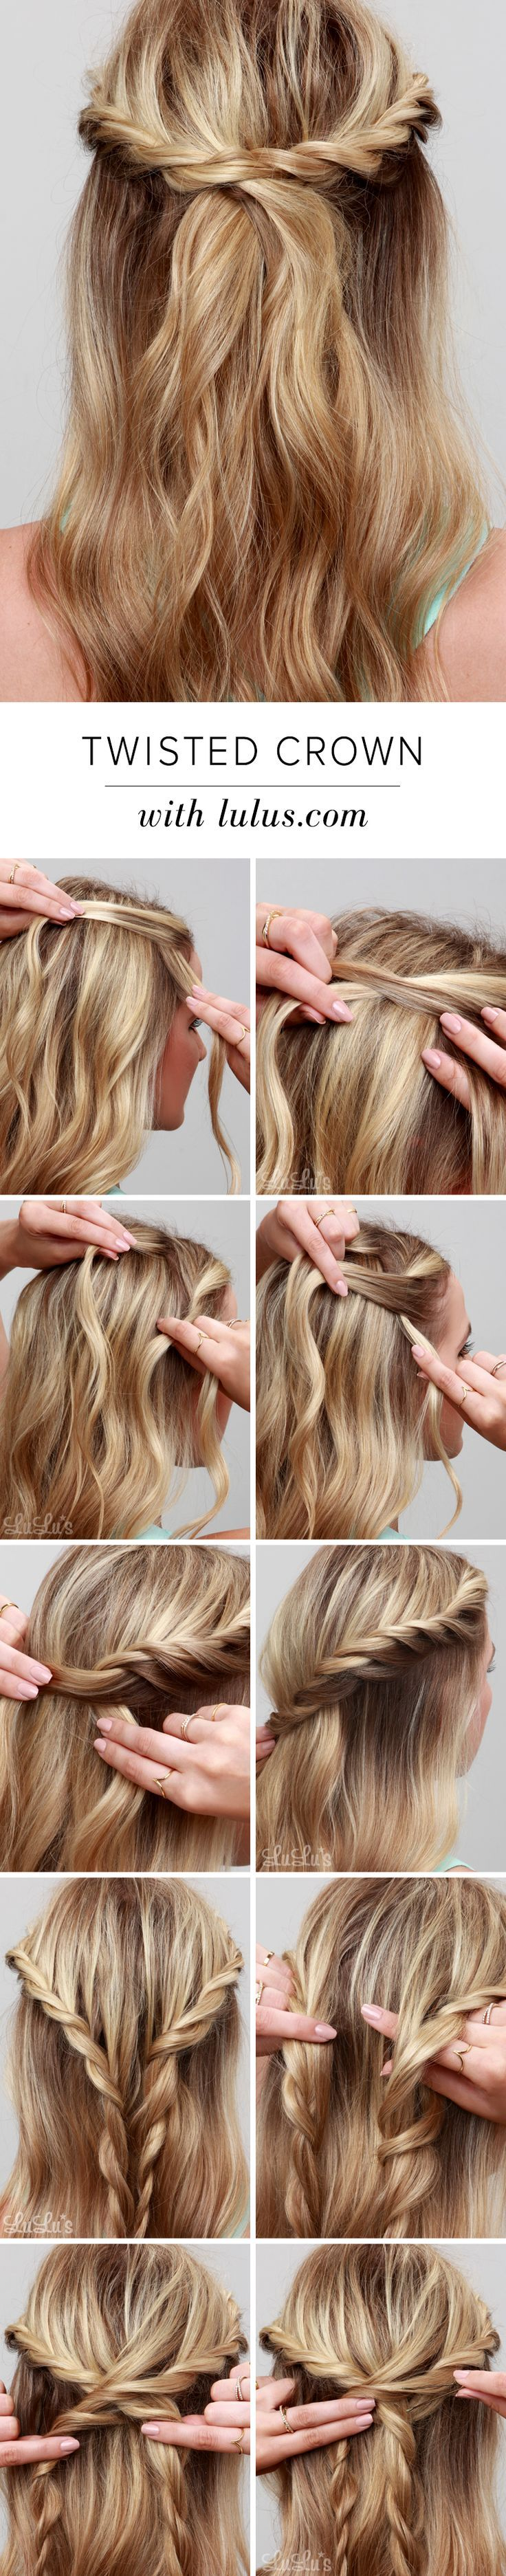 359 best Hairstyles images on Pinterest